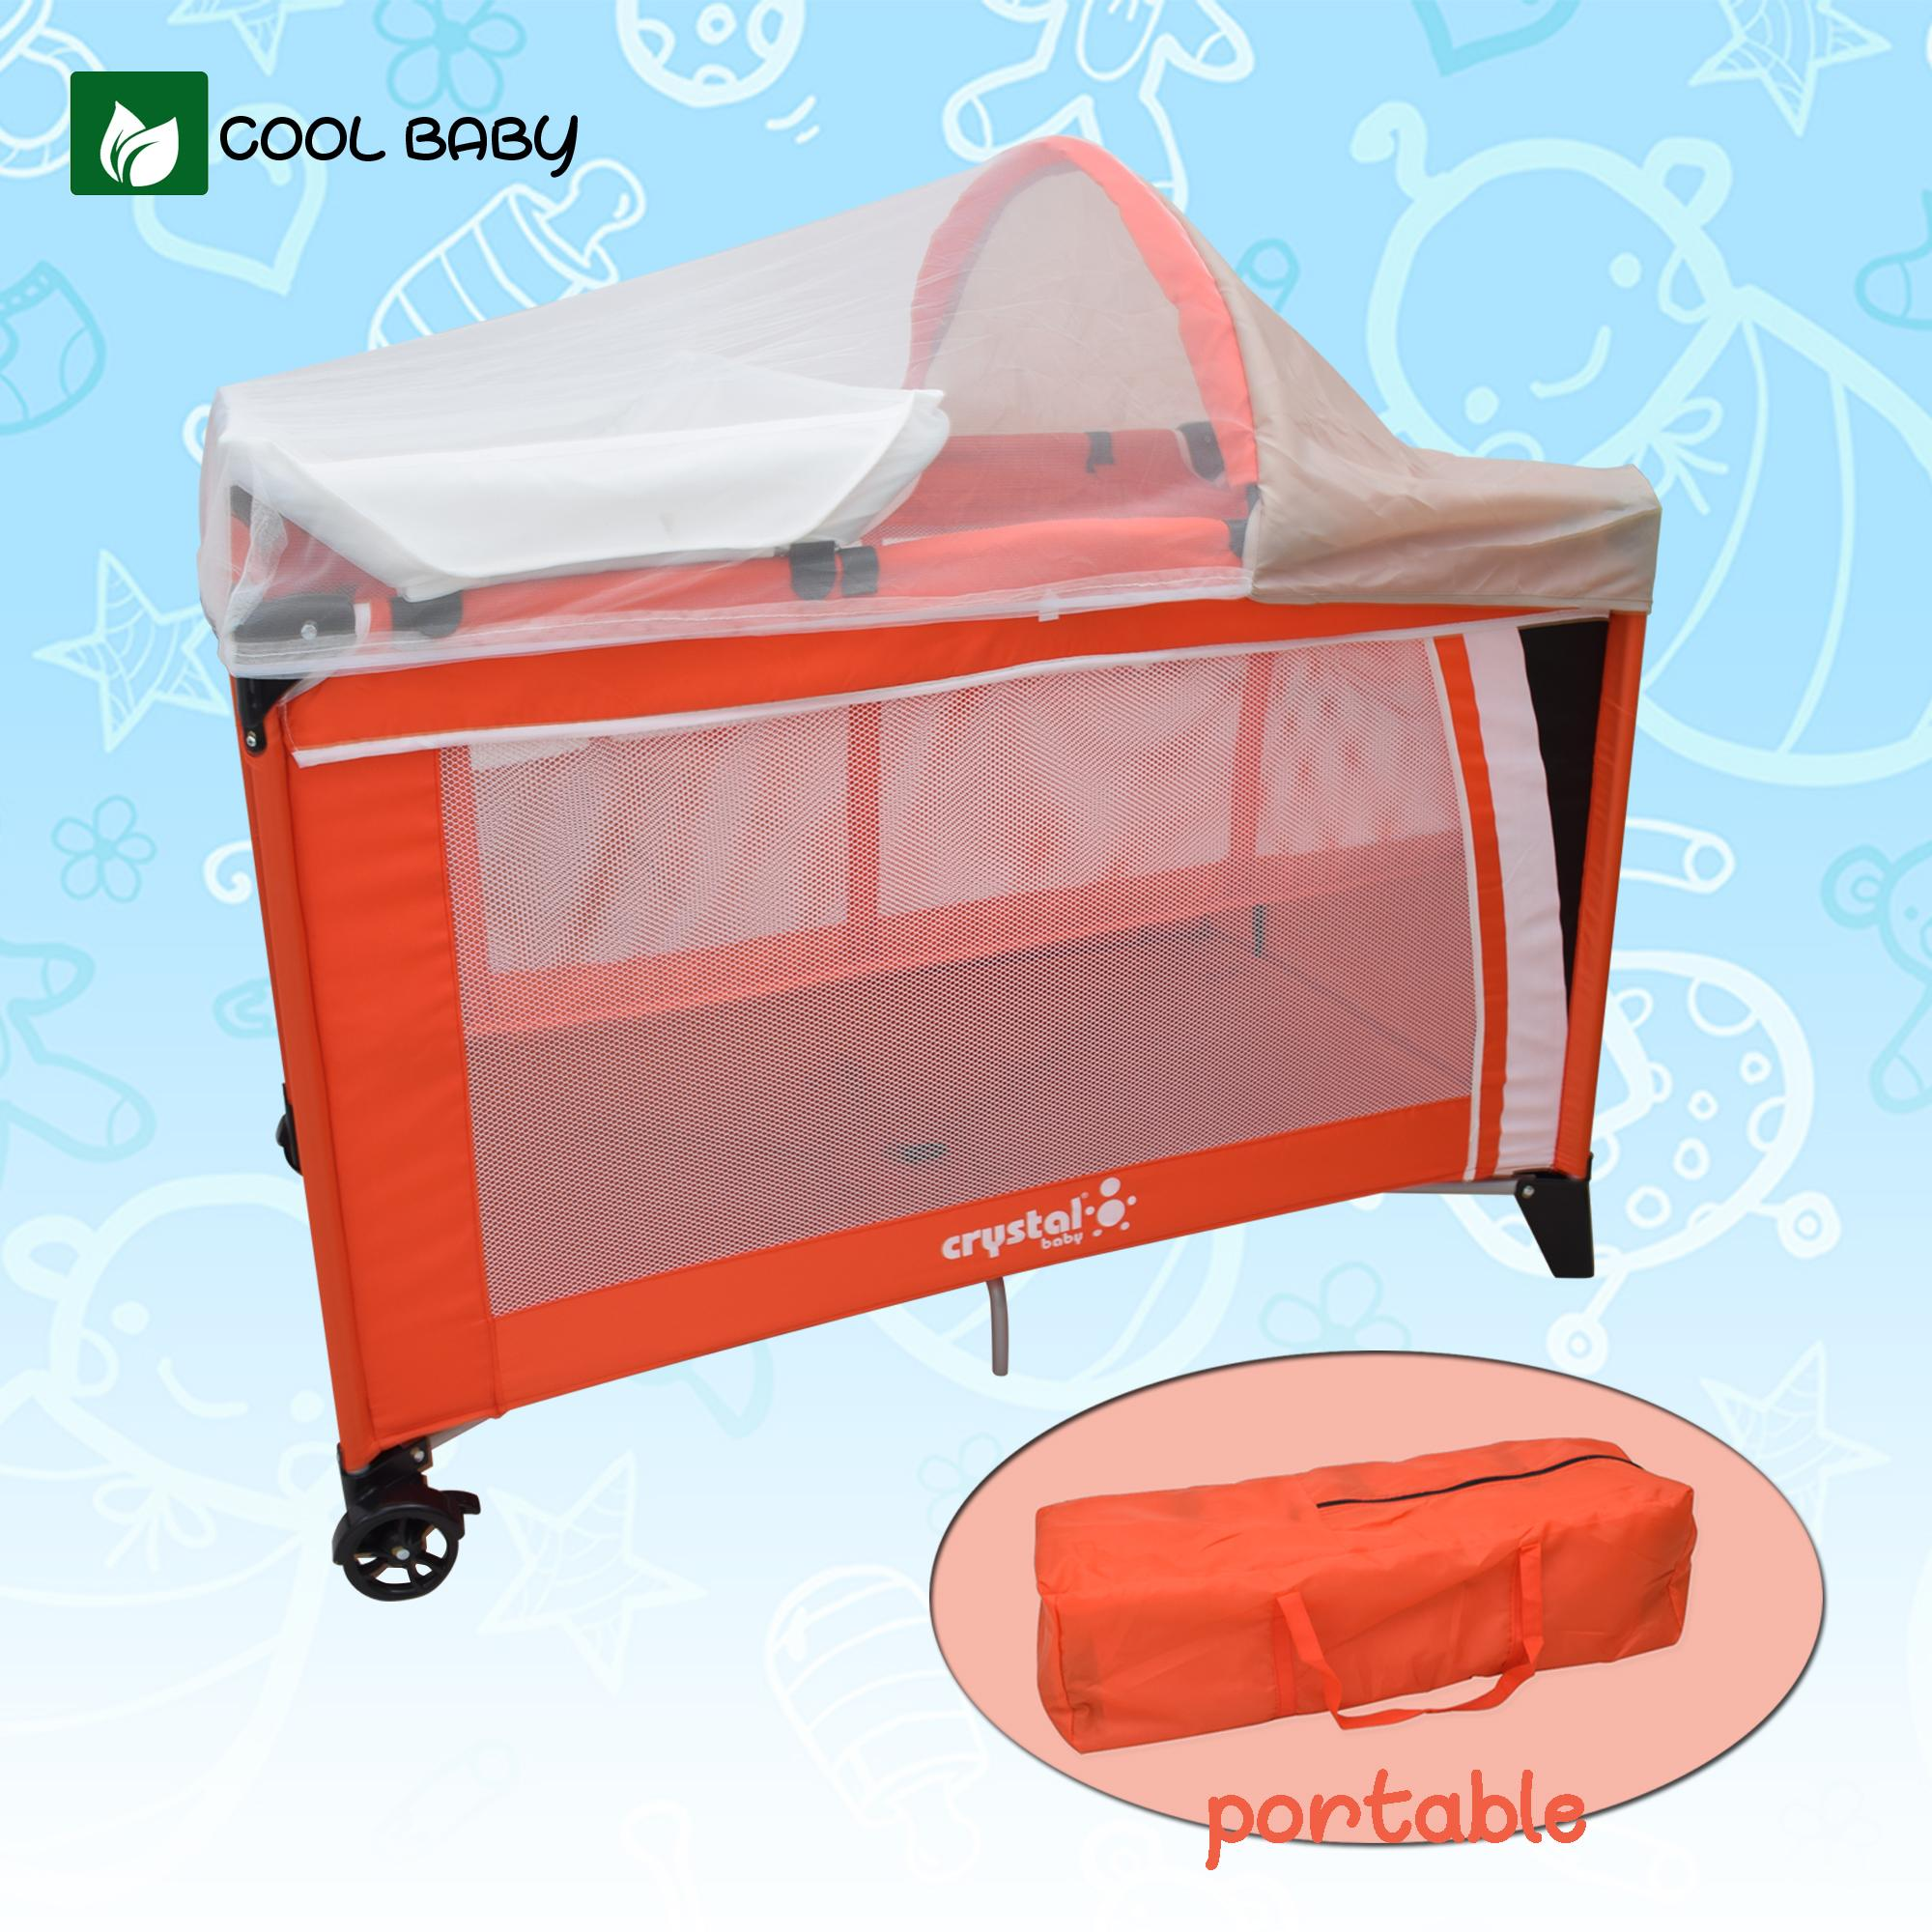 Cool Baby 102 Baby Crib Nursery Playpen With Mosquito Net By Cool Baby.